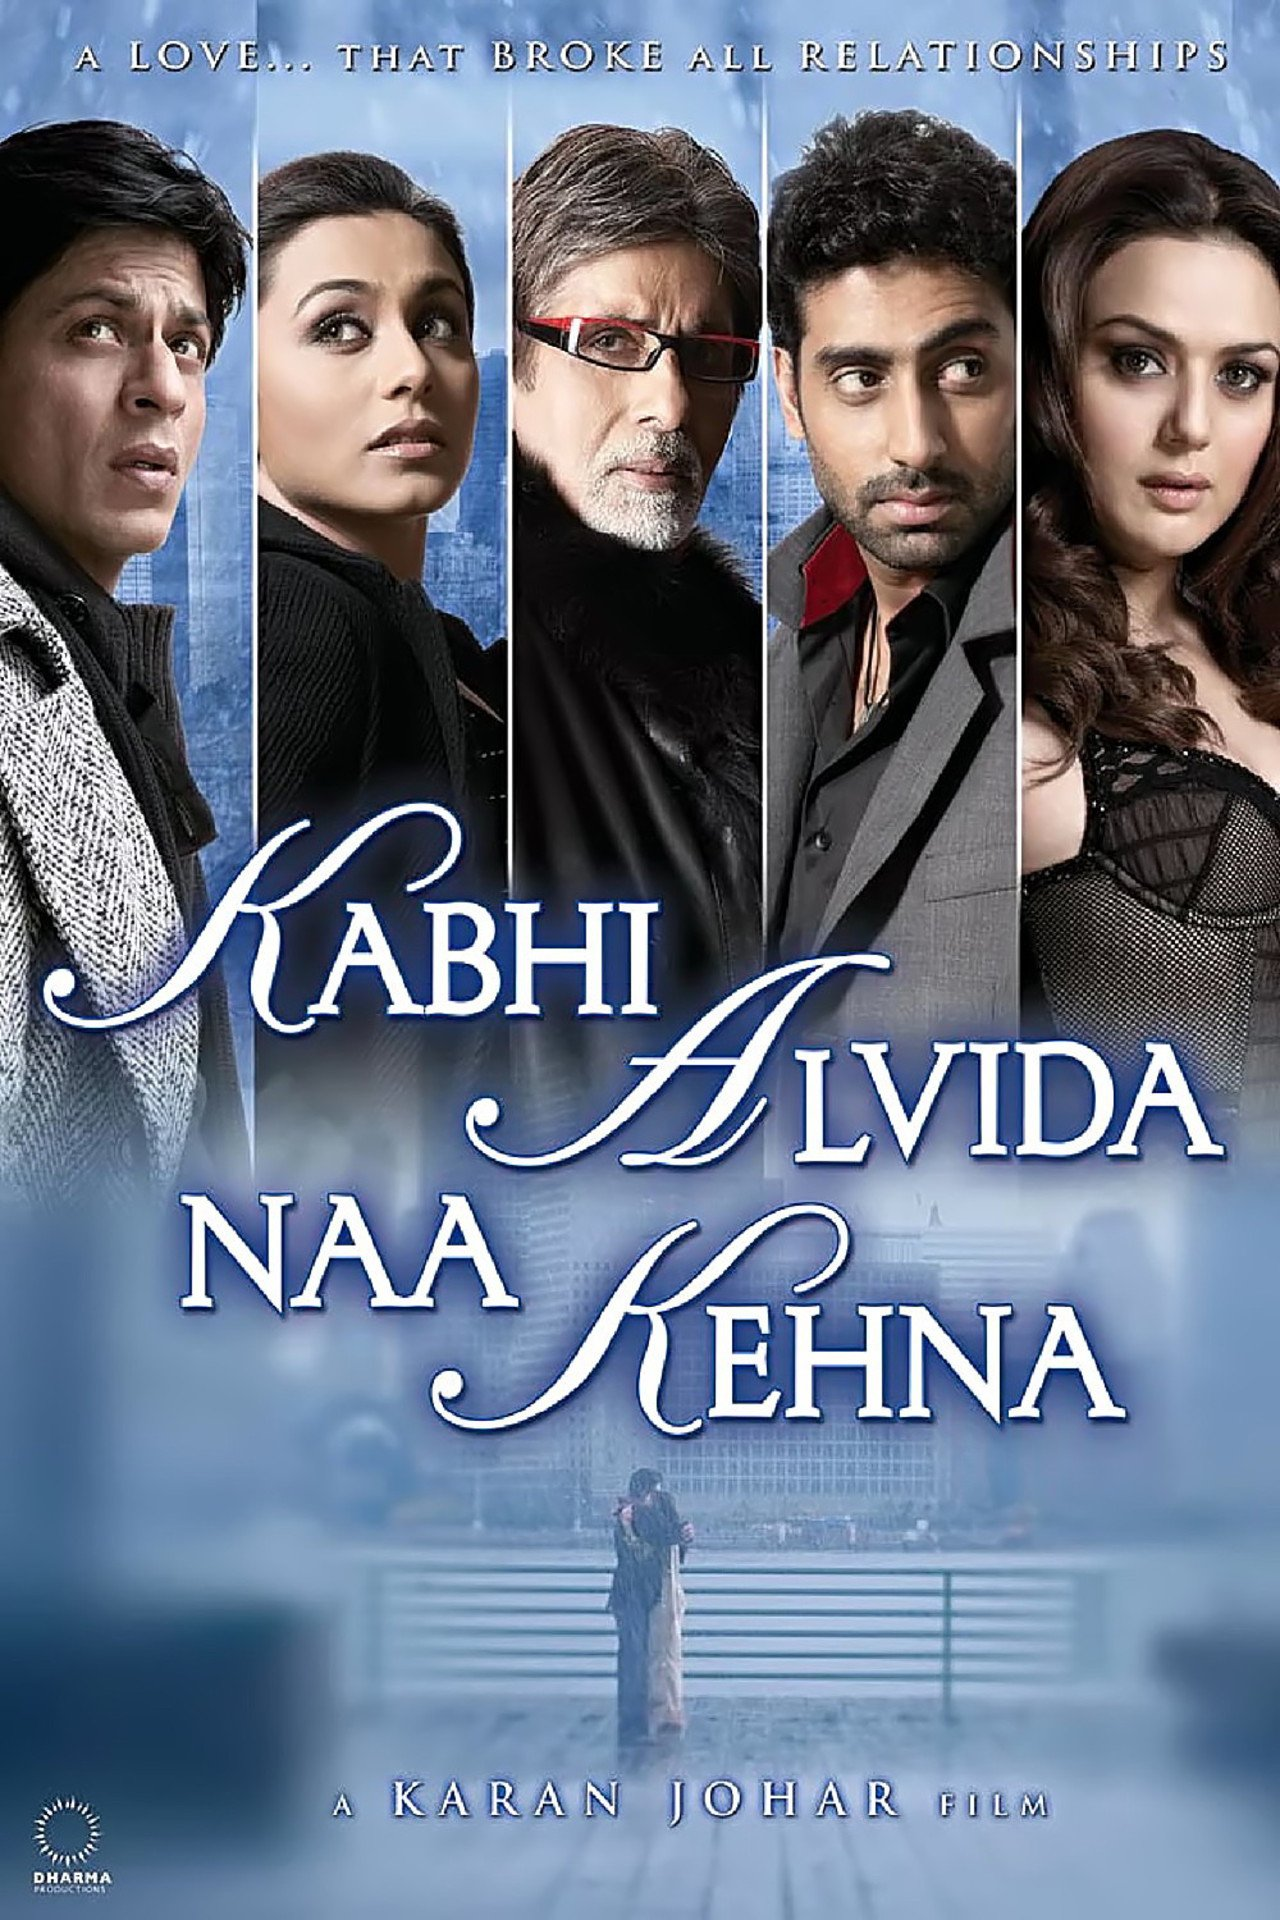 Kabhi Alvida Naa Kehna (2006) Ssrmovies Full Movie Download HD